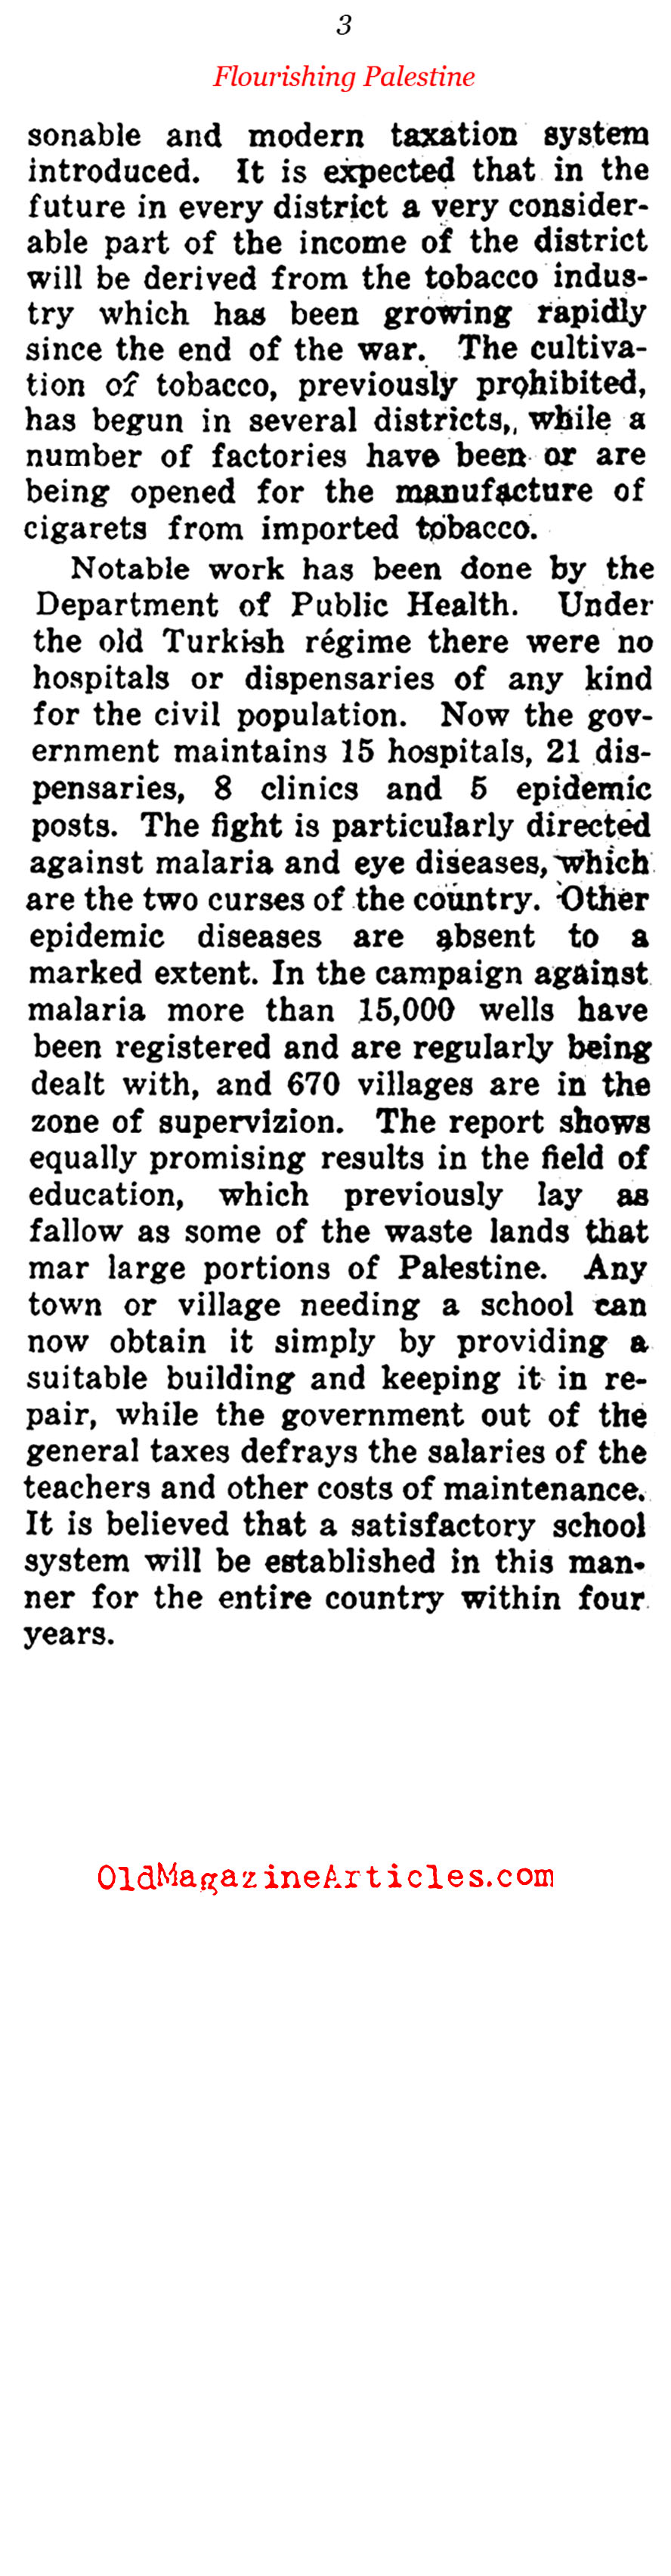 British Palestine Thrives (Current Opinion, 1922)